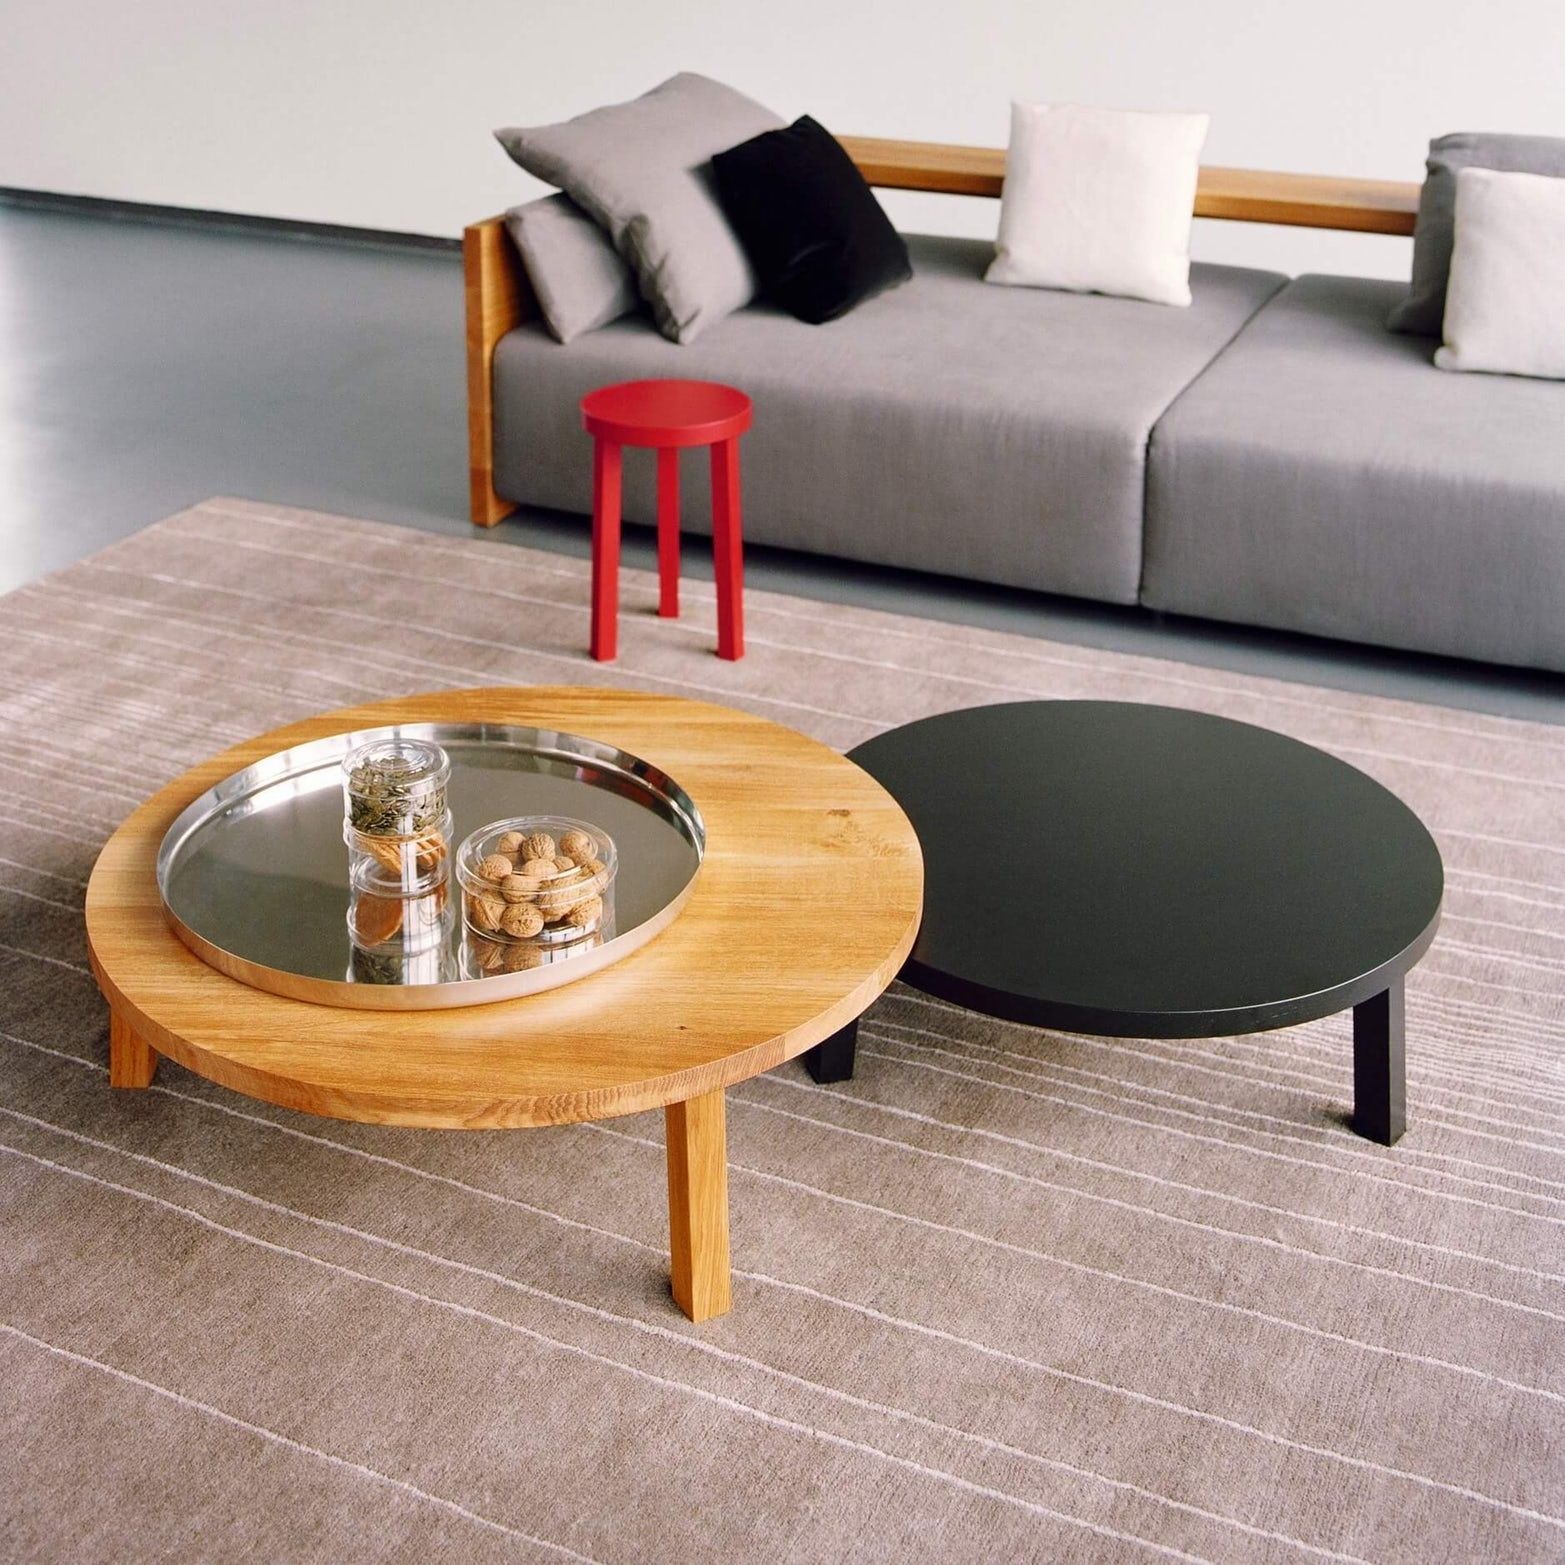 Leila Coffee Table By E15 Furniture Coffee Table Furniture Coffee Table Size [ 1565 x 1565 Pixel ]